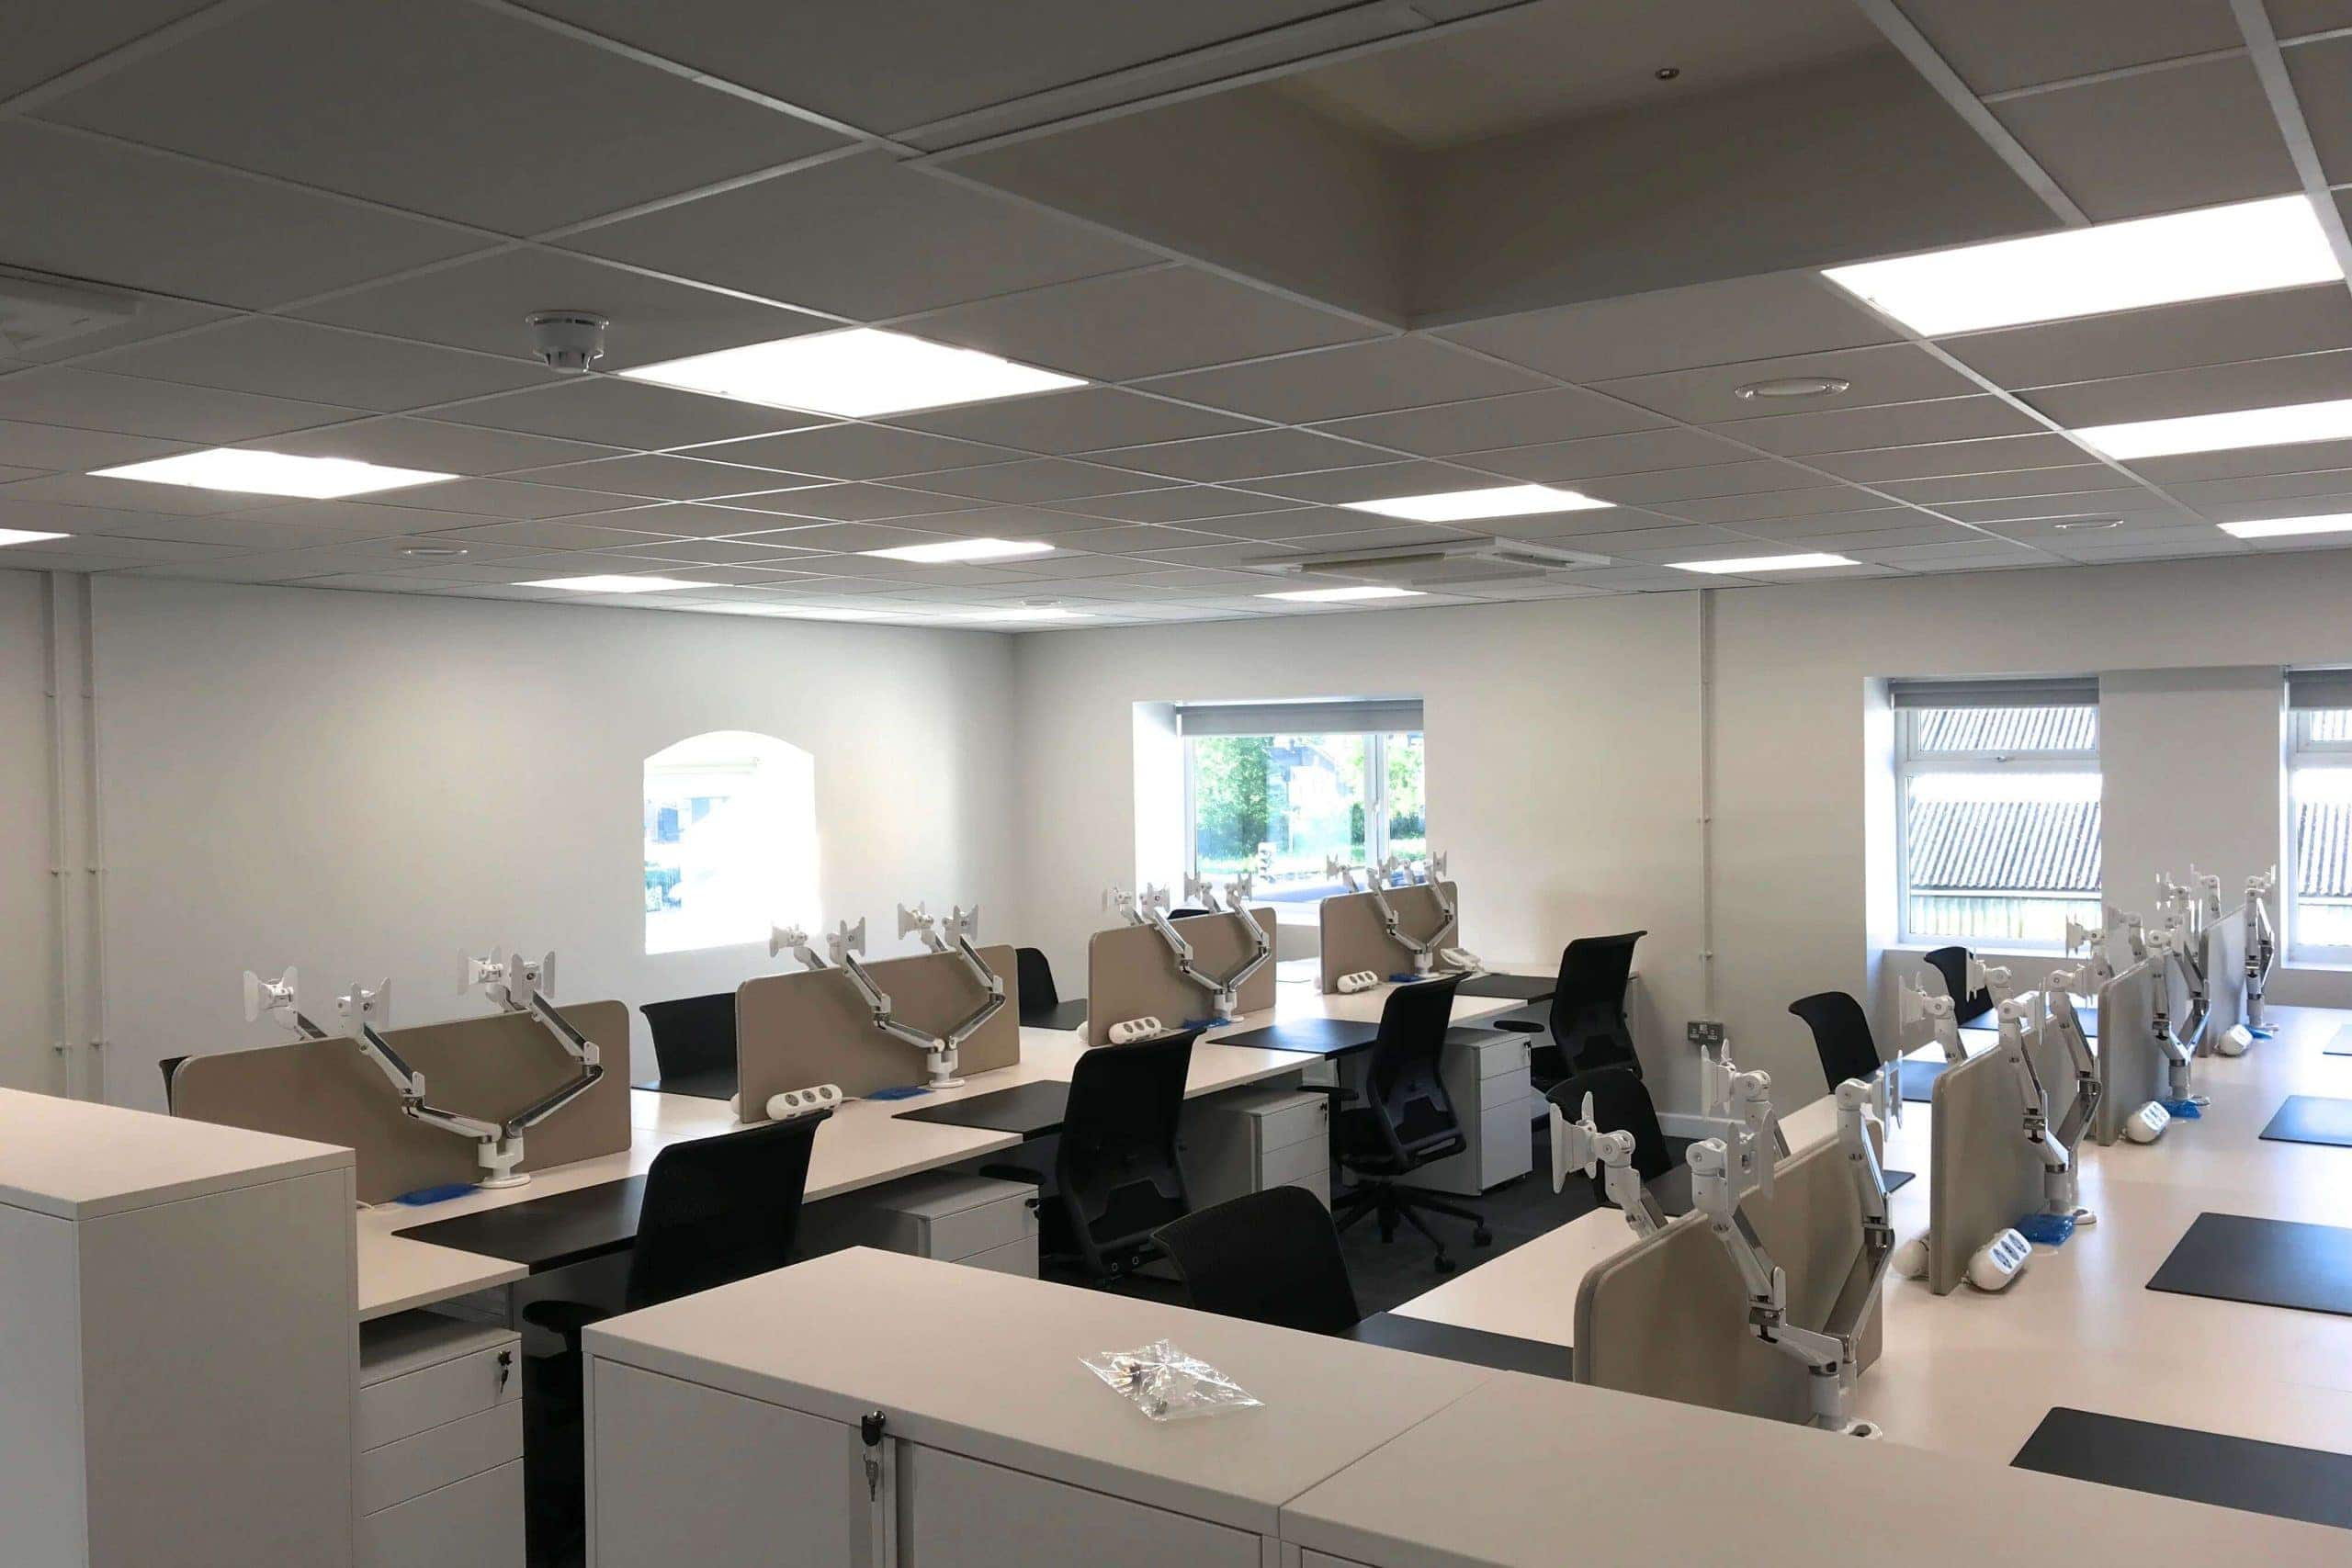 Norwood junction large commercial air conditioning solution by SubCool FM white ceiling cassette in multi-desk office or hot desk area